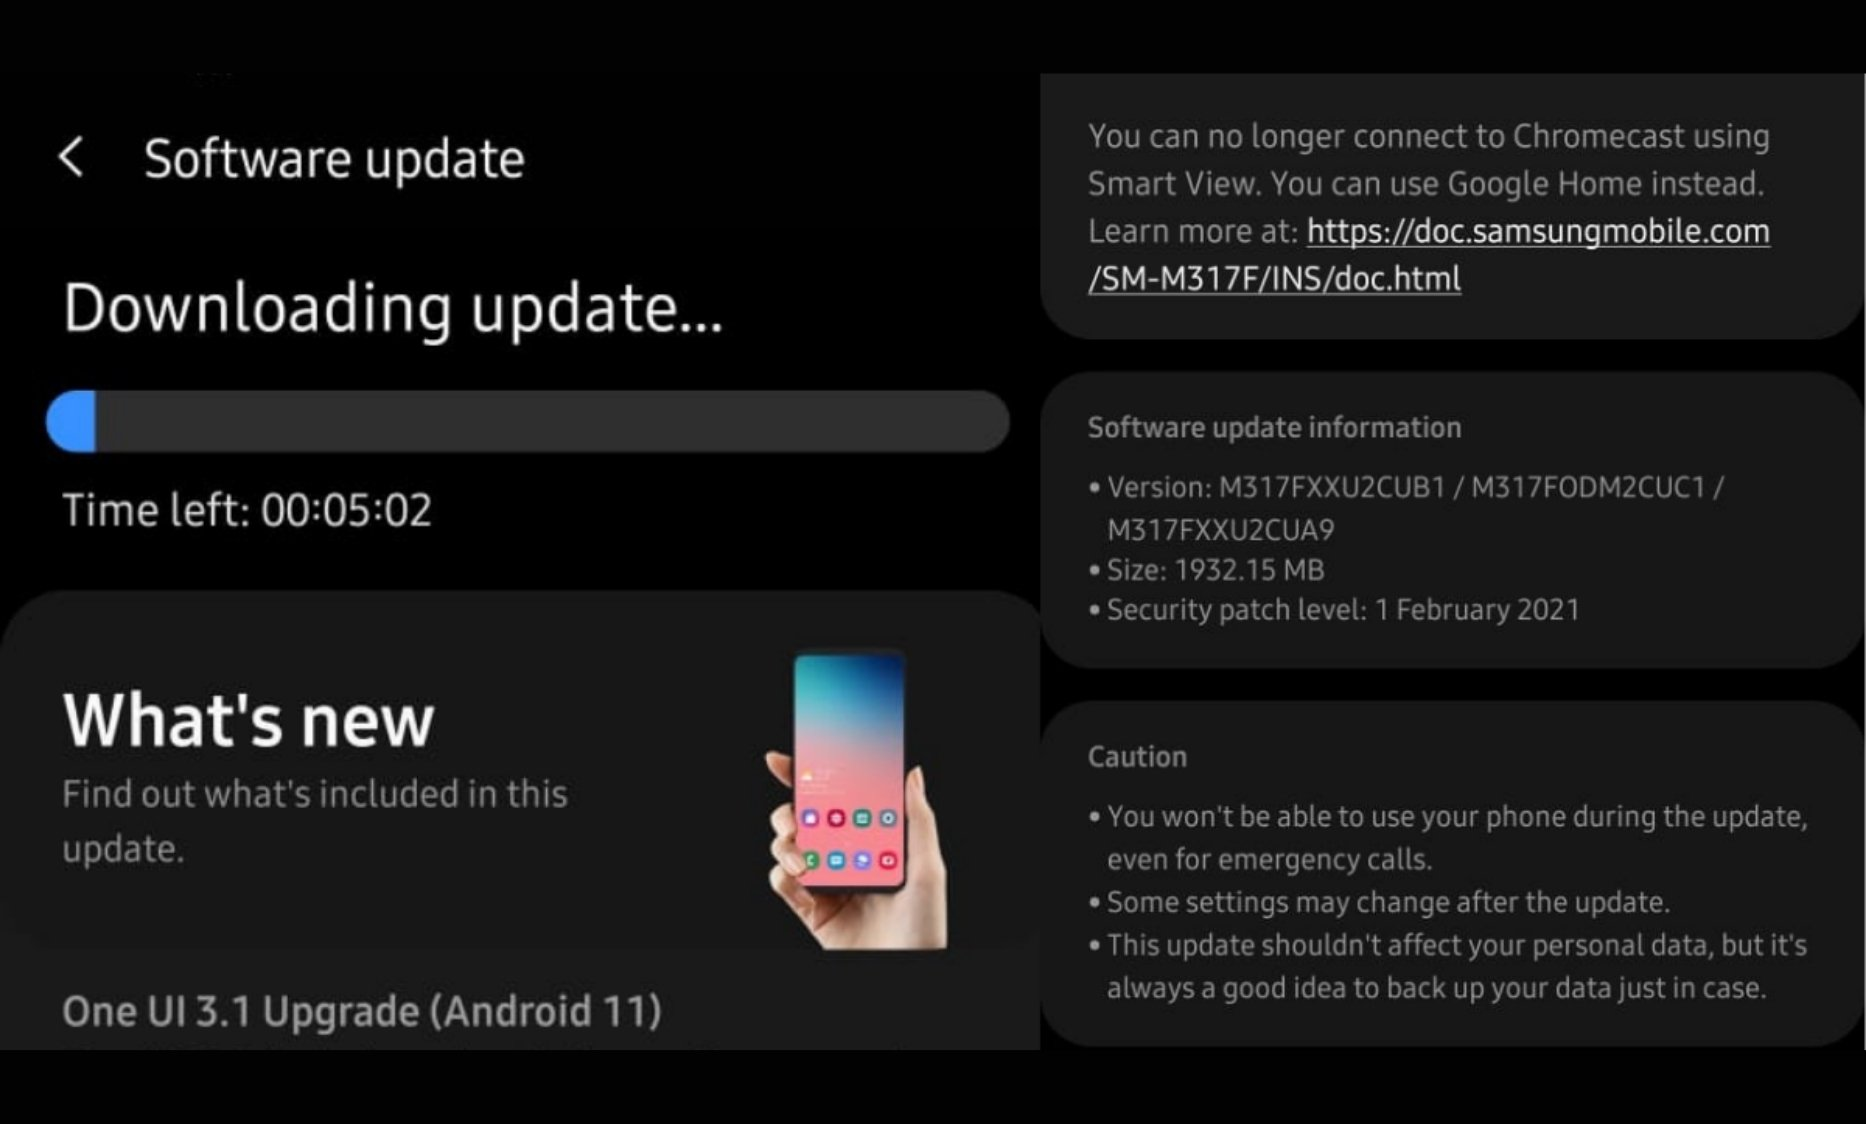 Samsung pushes out One UI 3.1 Upgrade (Android 11) for Samsung M31s in India - Digpu News